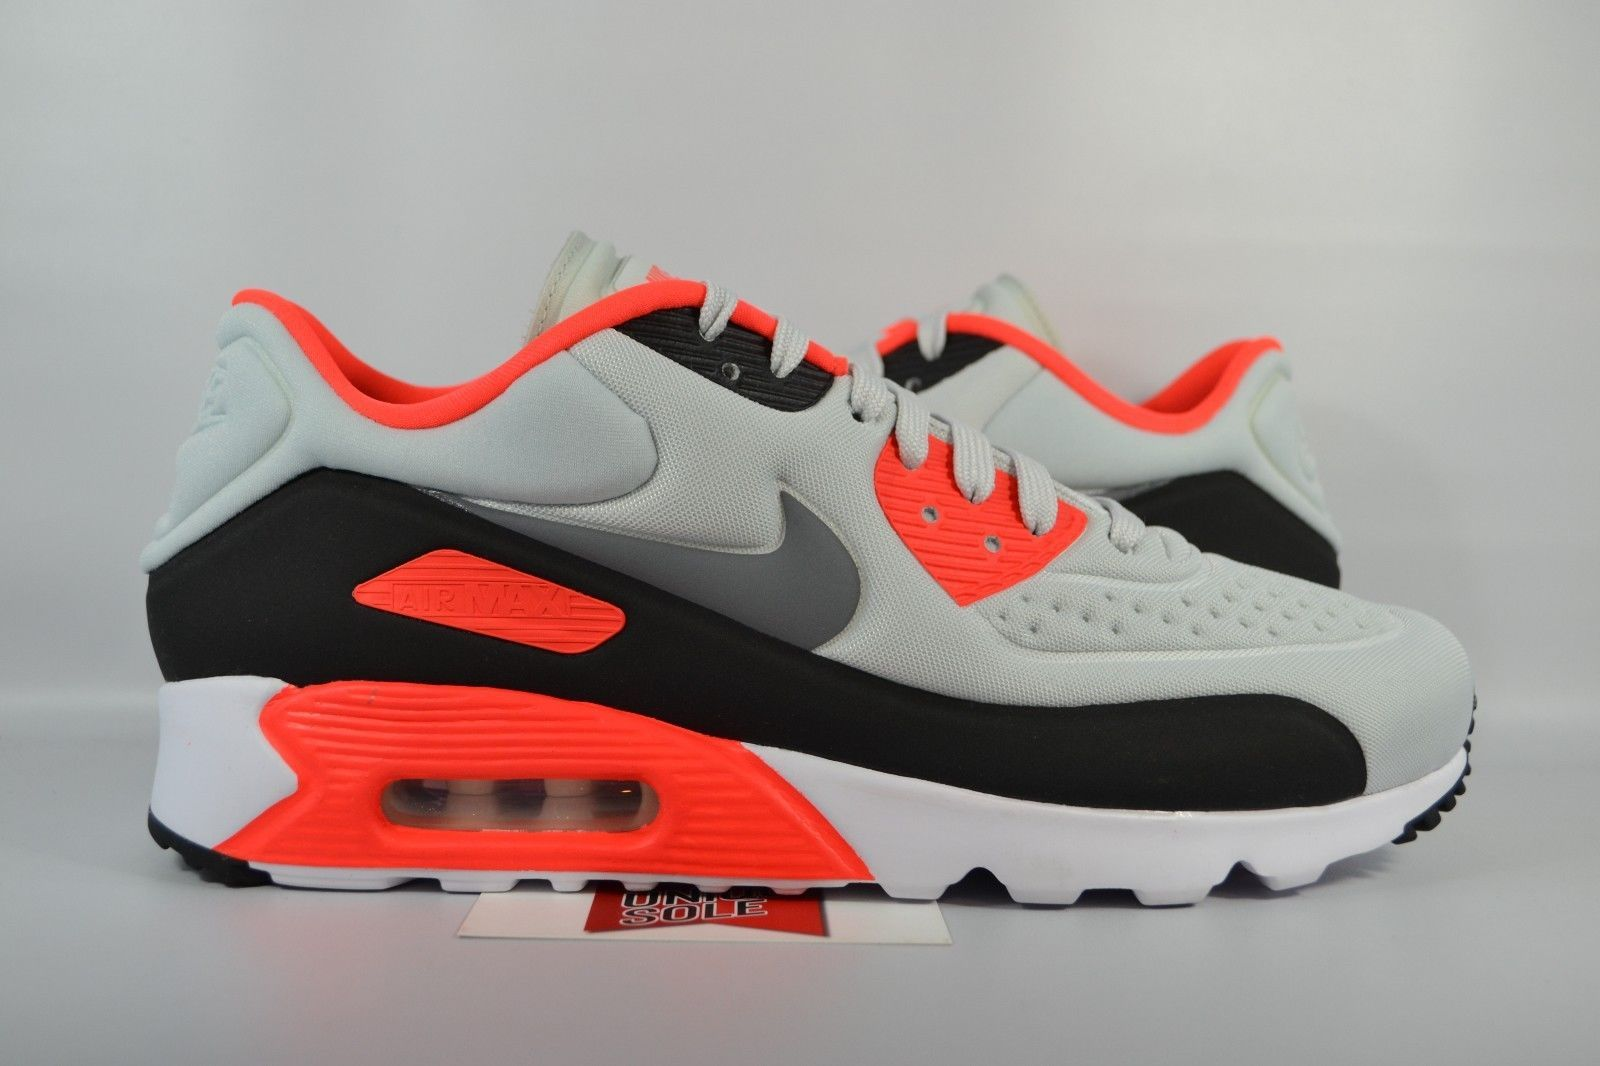 size 40 b351c 86937 NEW Nike Air Max 90 Ultra SE INFRARED PURE PLATINUM GREY 845039-006 sz  10.5. Find this Pin and more on Men s Shoes ...